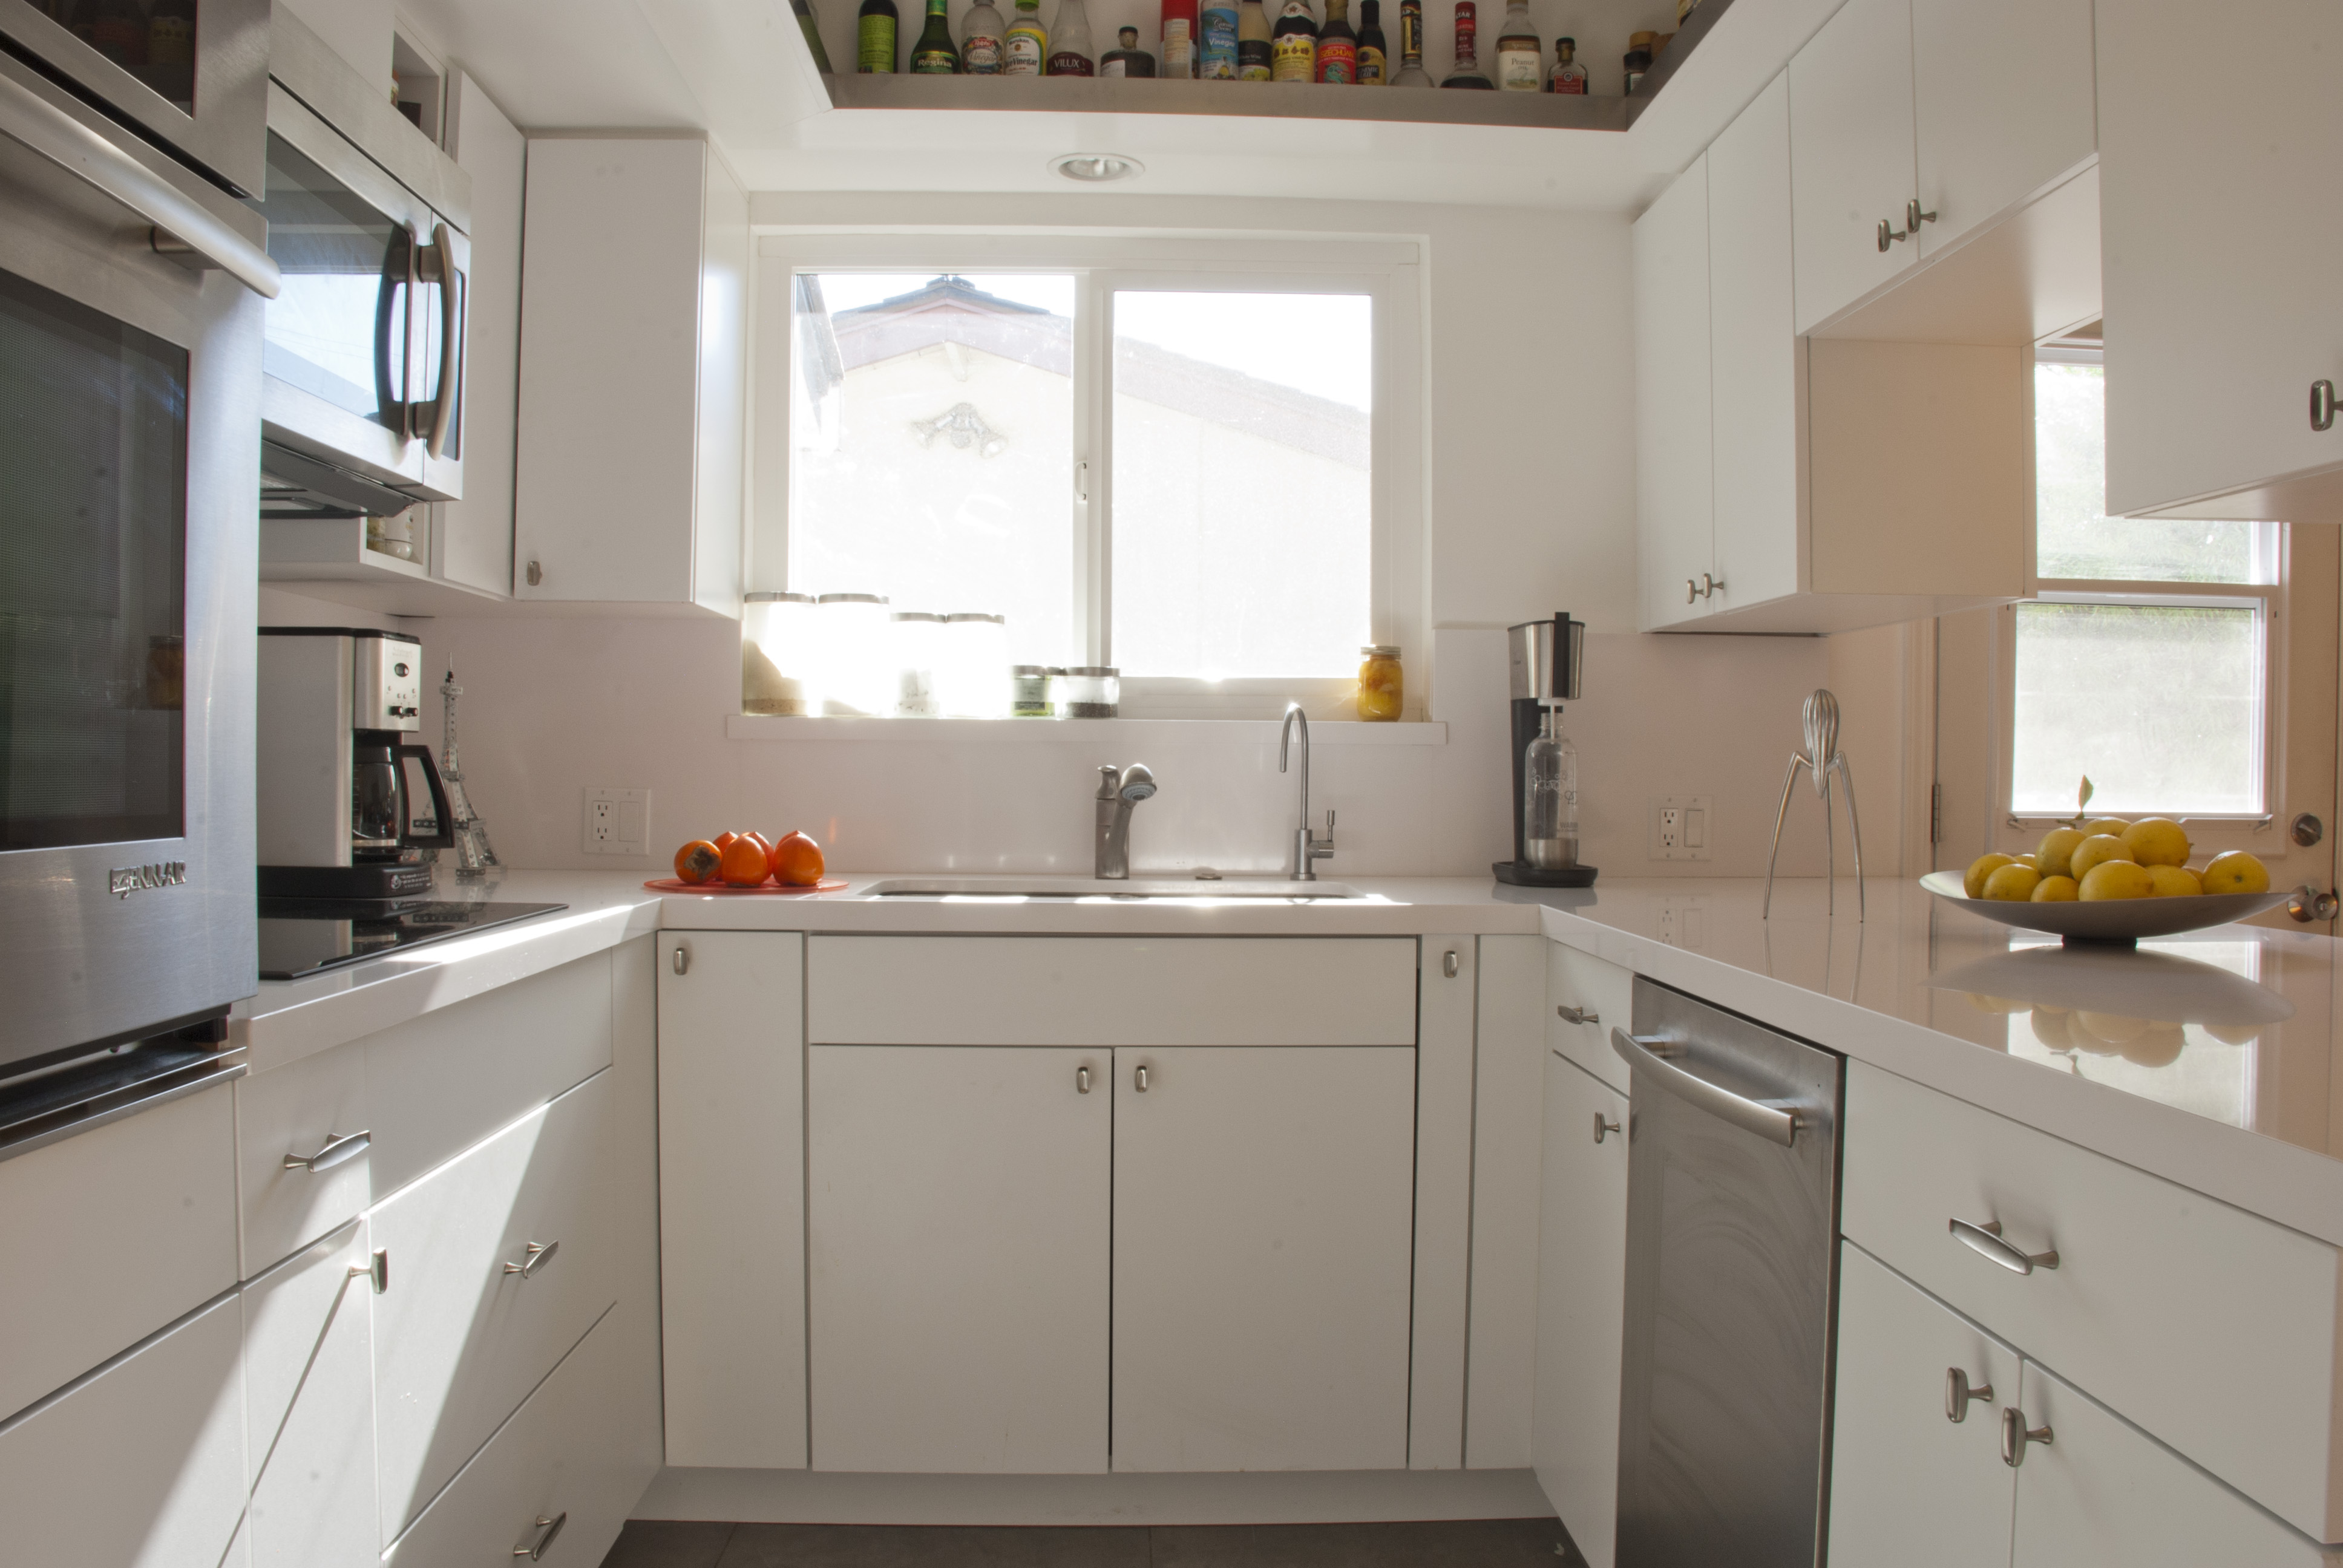 Image of: Do Quartz Countertops Stain